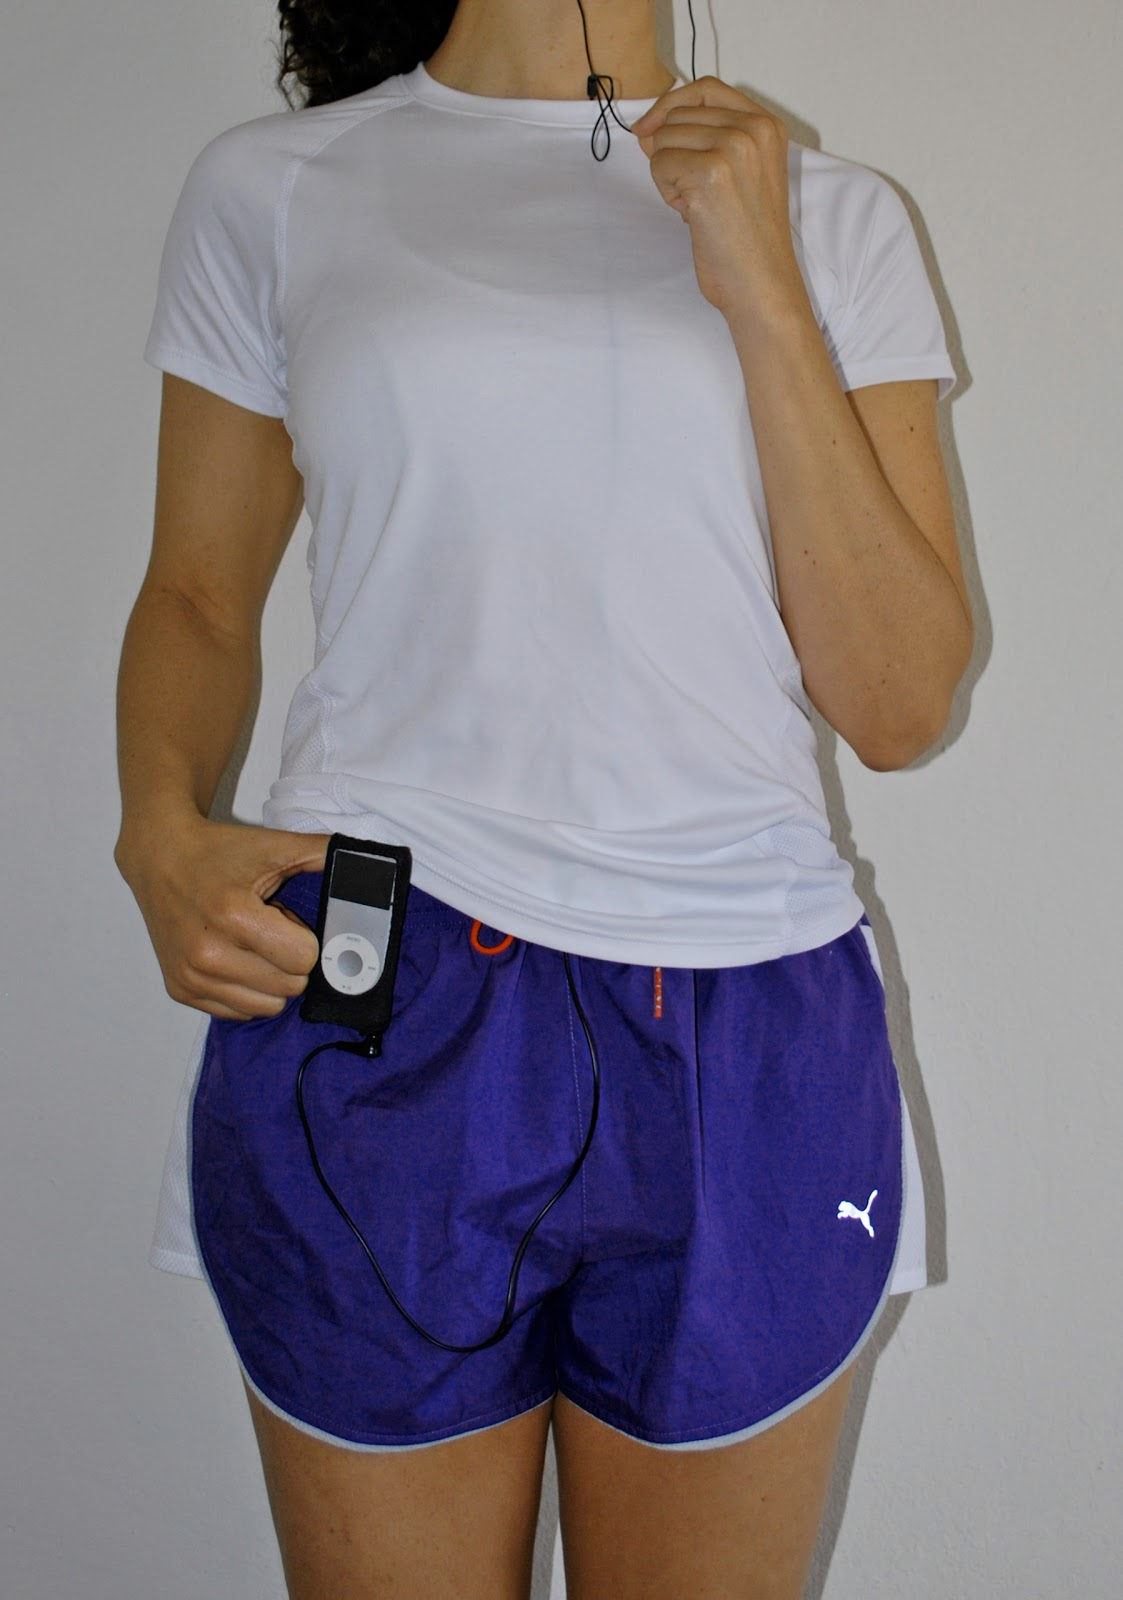 Wear to what running 15 degrees catalog photo